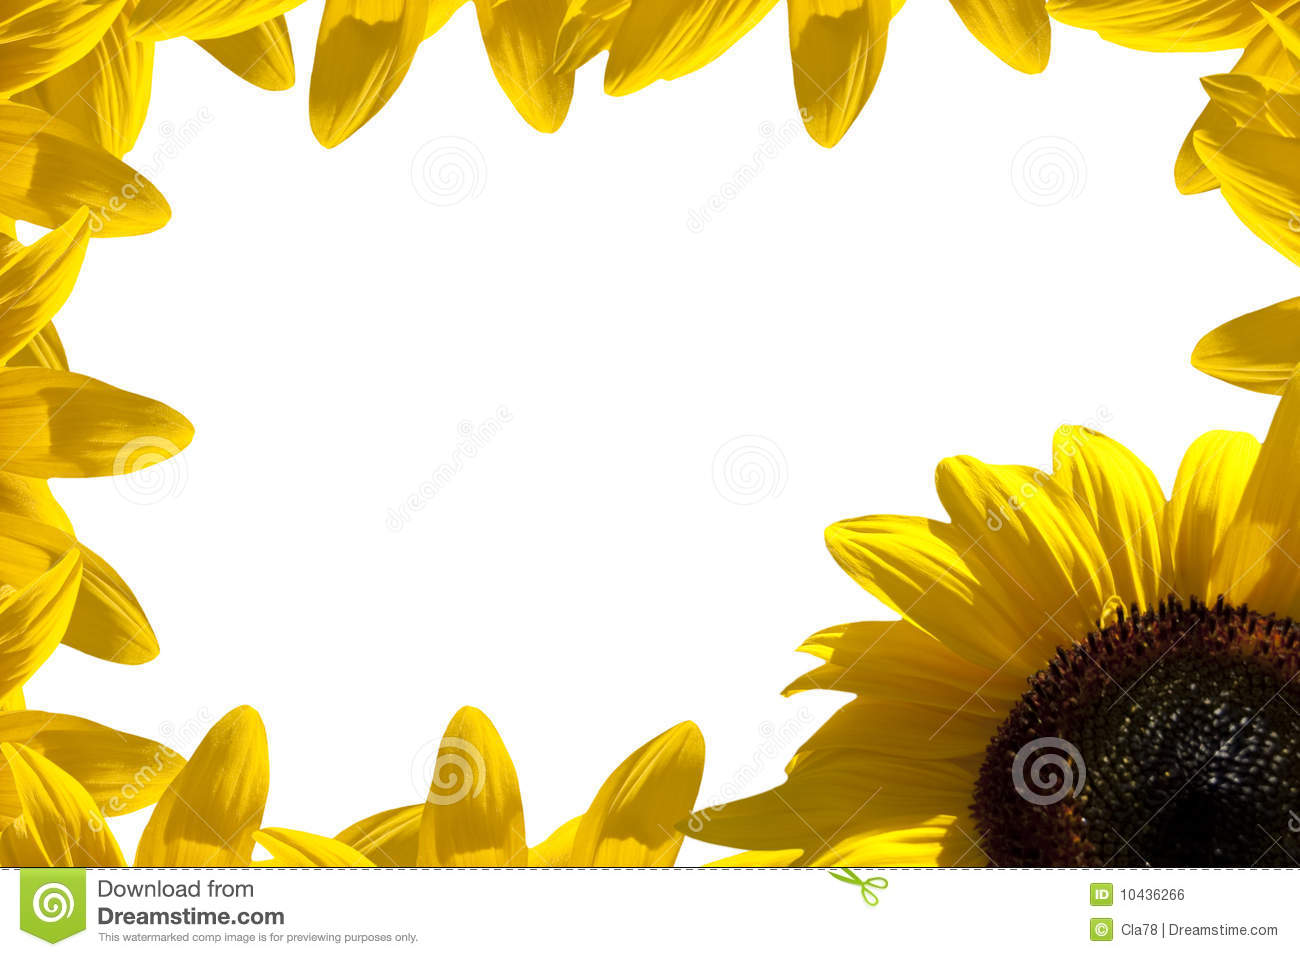 Sunflower Border Royalty Free Stock Image   Image  10436266